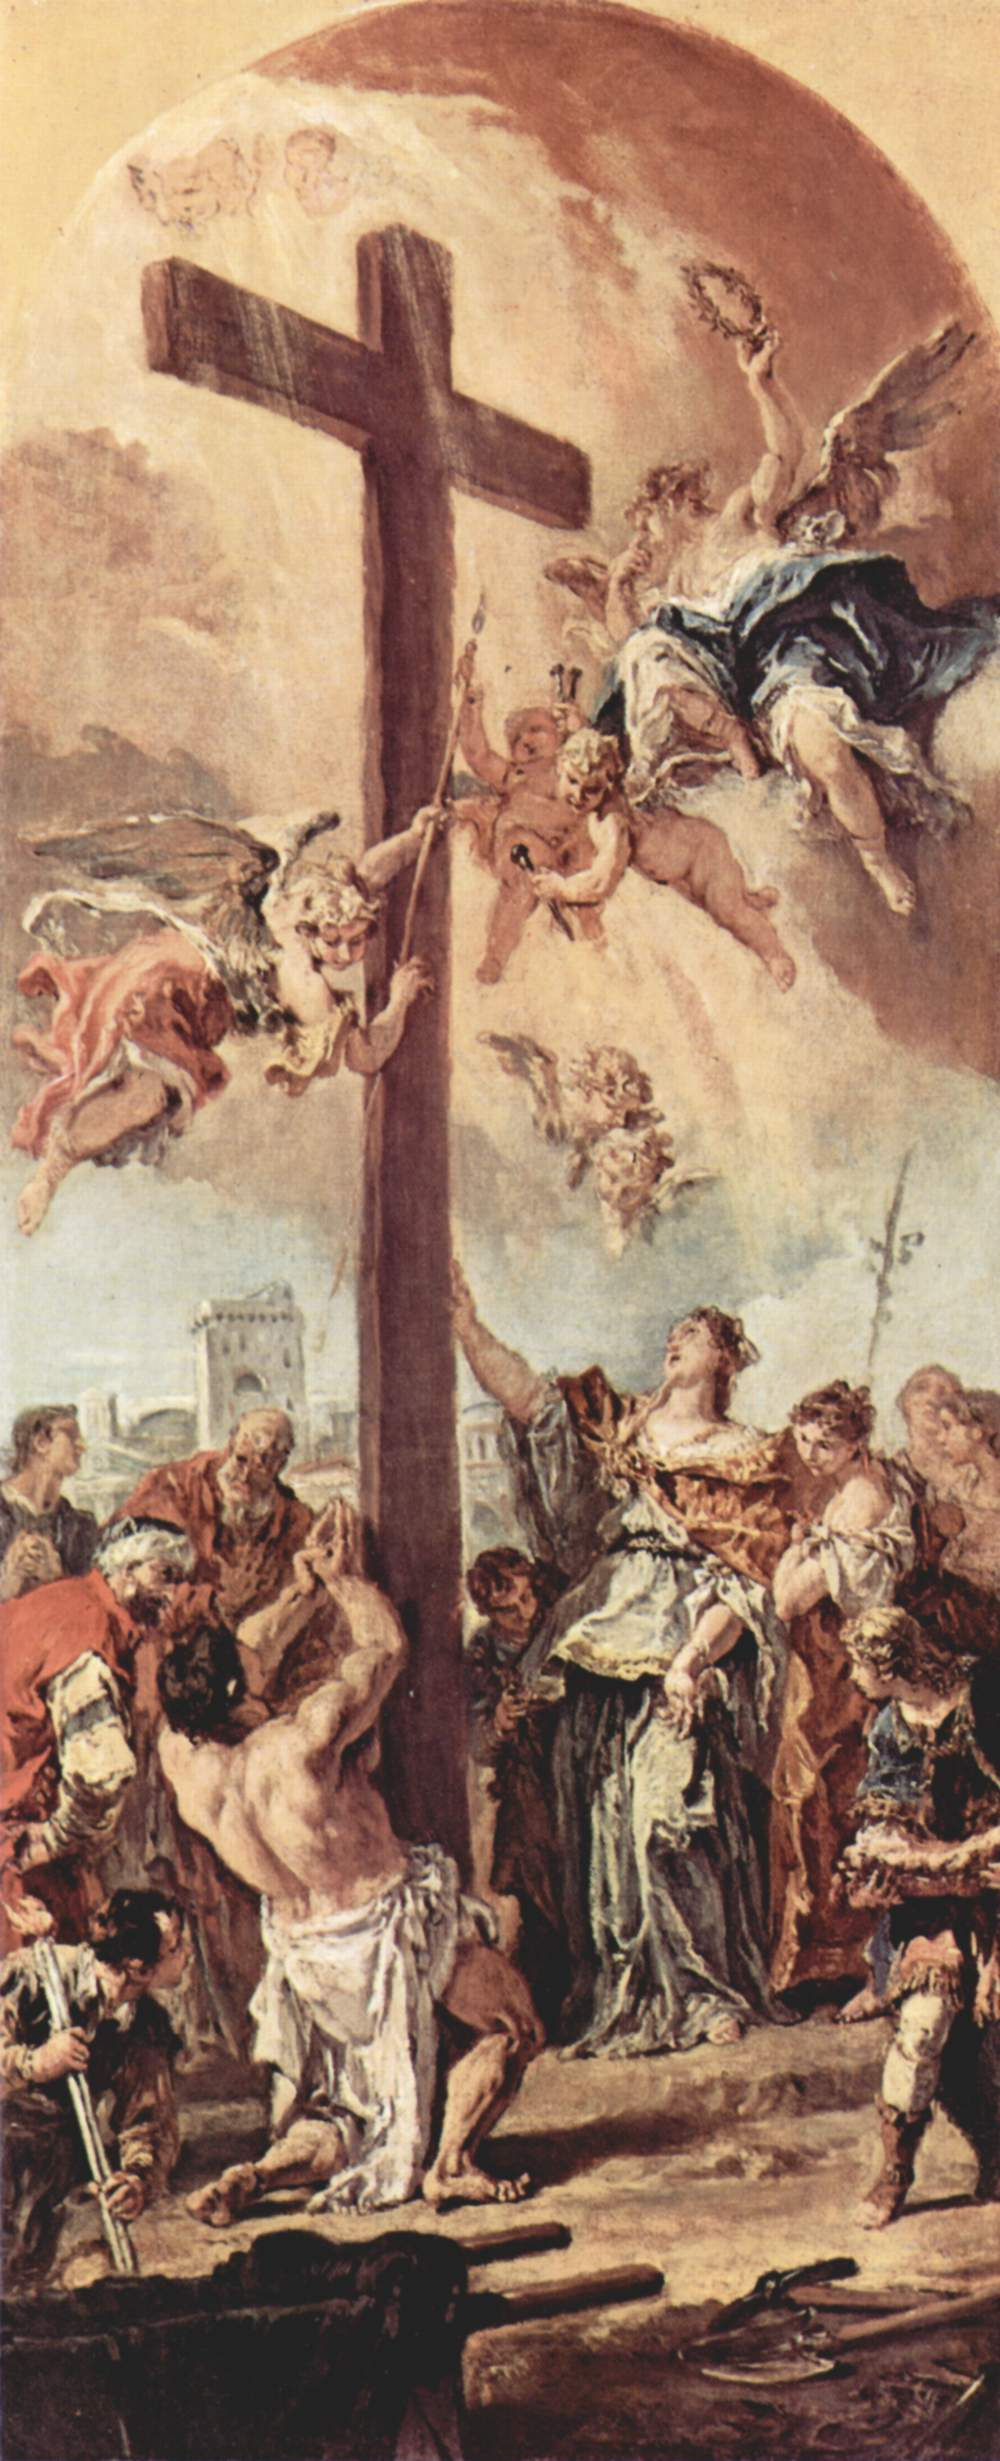 Sebastiano Ricci. The finding of the true cross by St. Helen, sketch